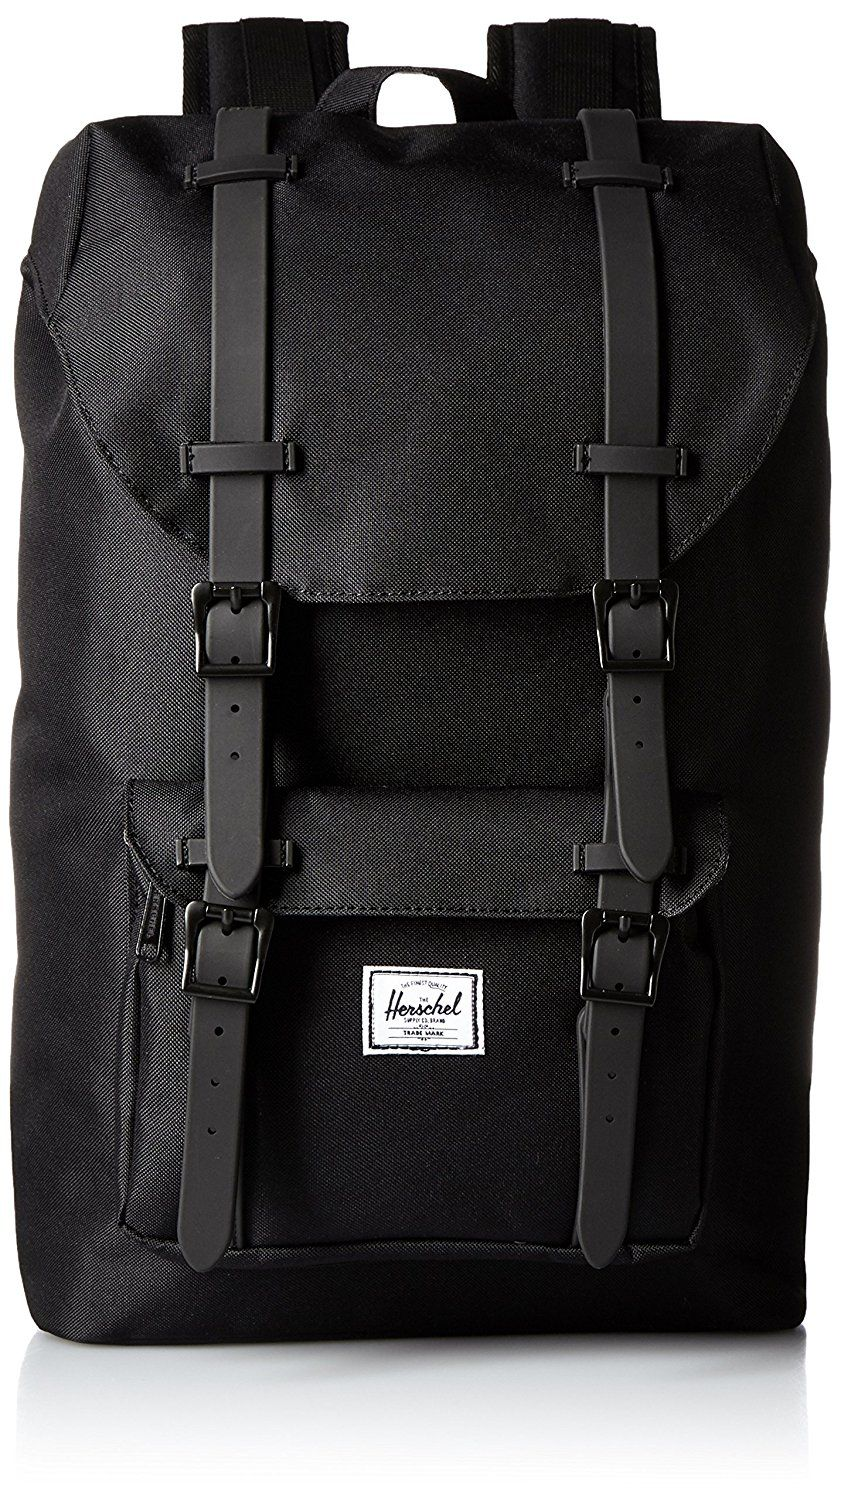 acf6cc8d49 Herschel Supply Co. Little America Mid-Volume Backpack -- This is an Amazon  Affiliate link. For more information